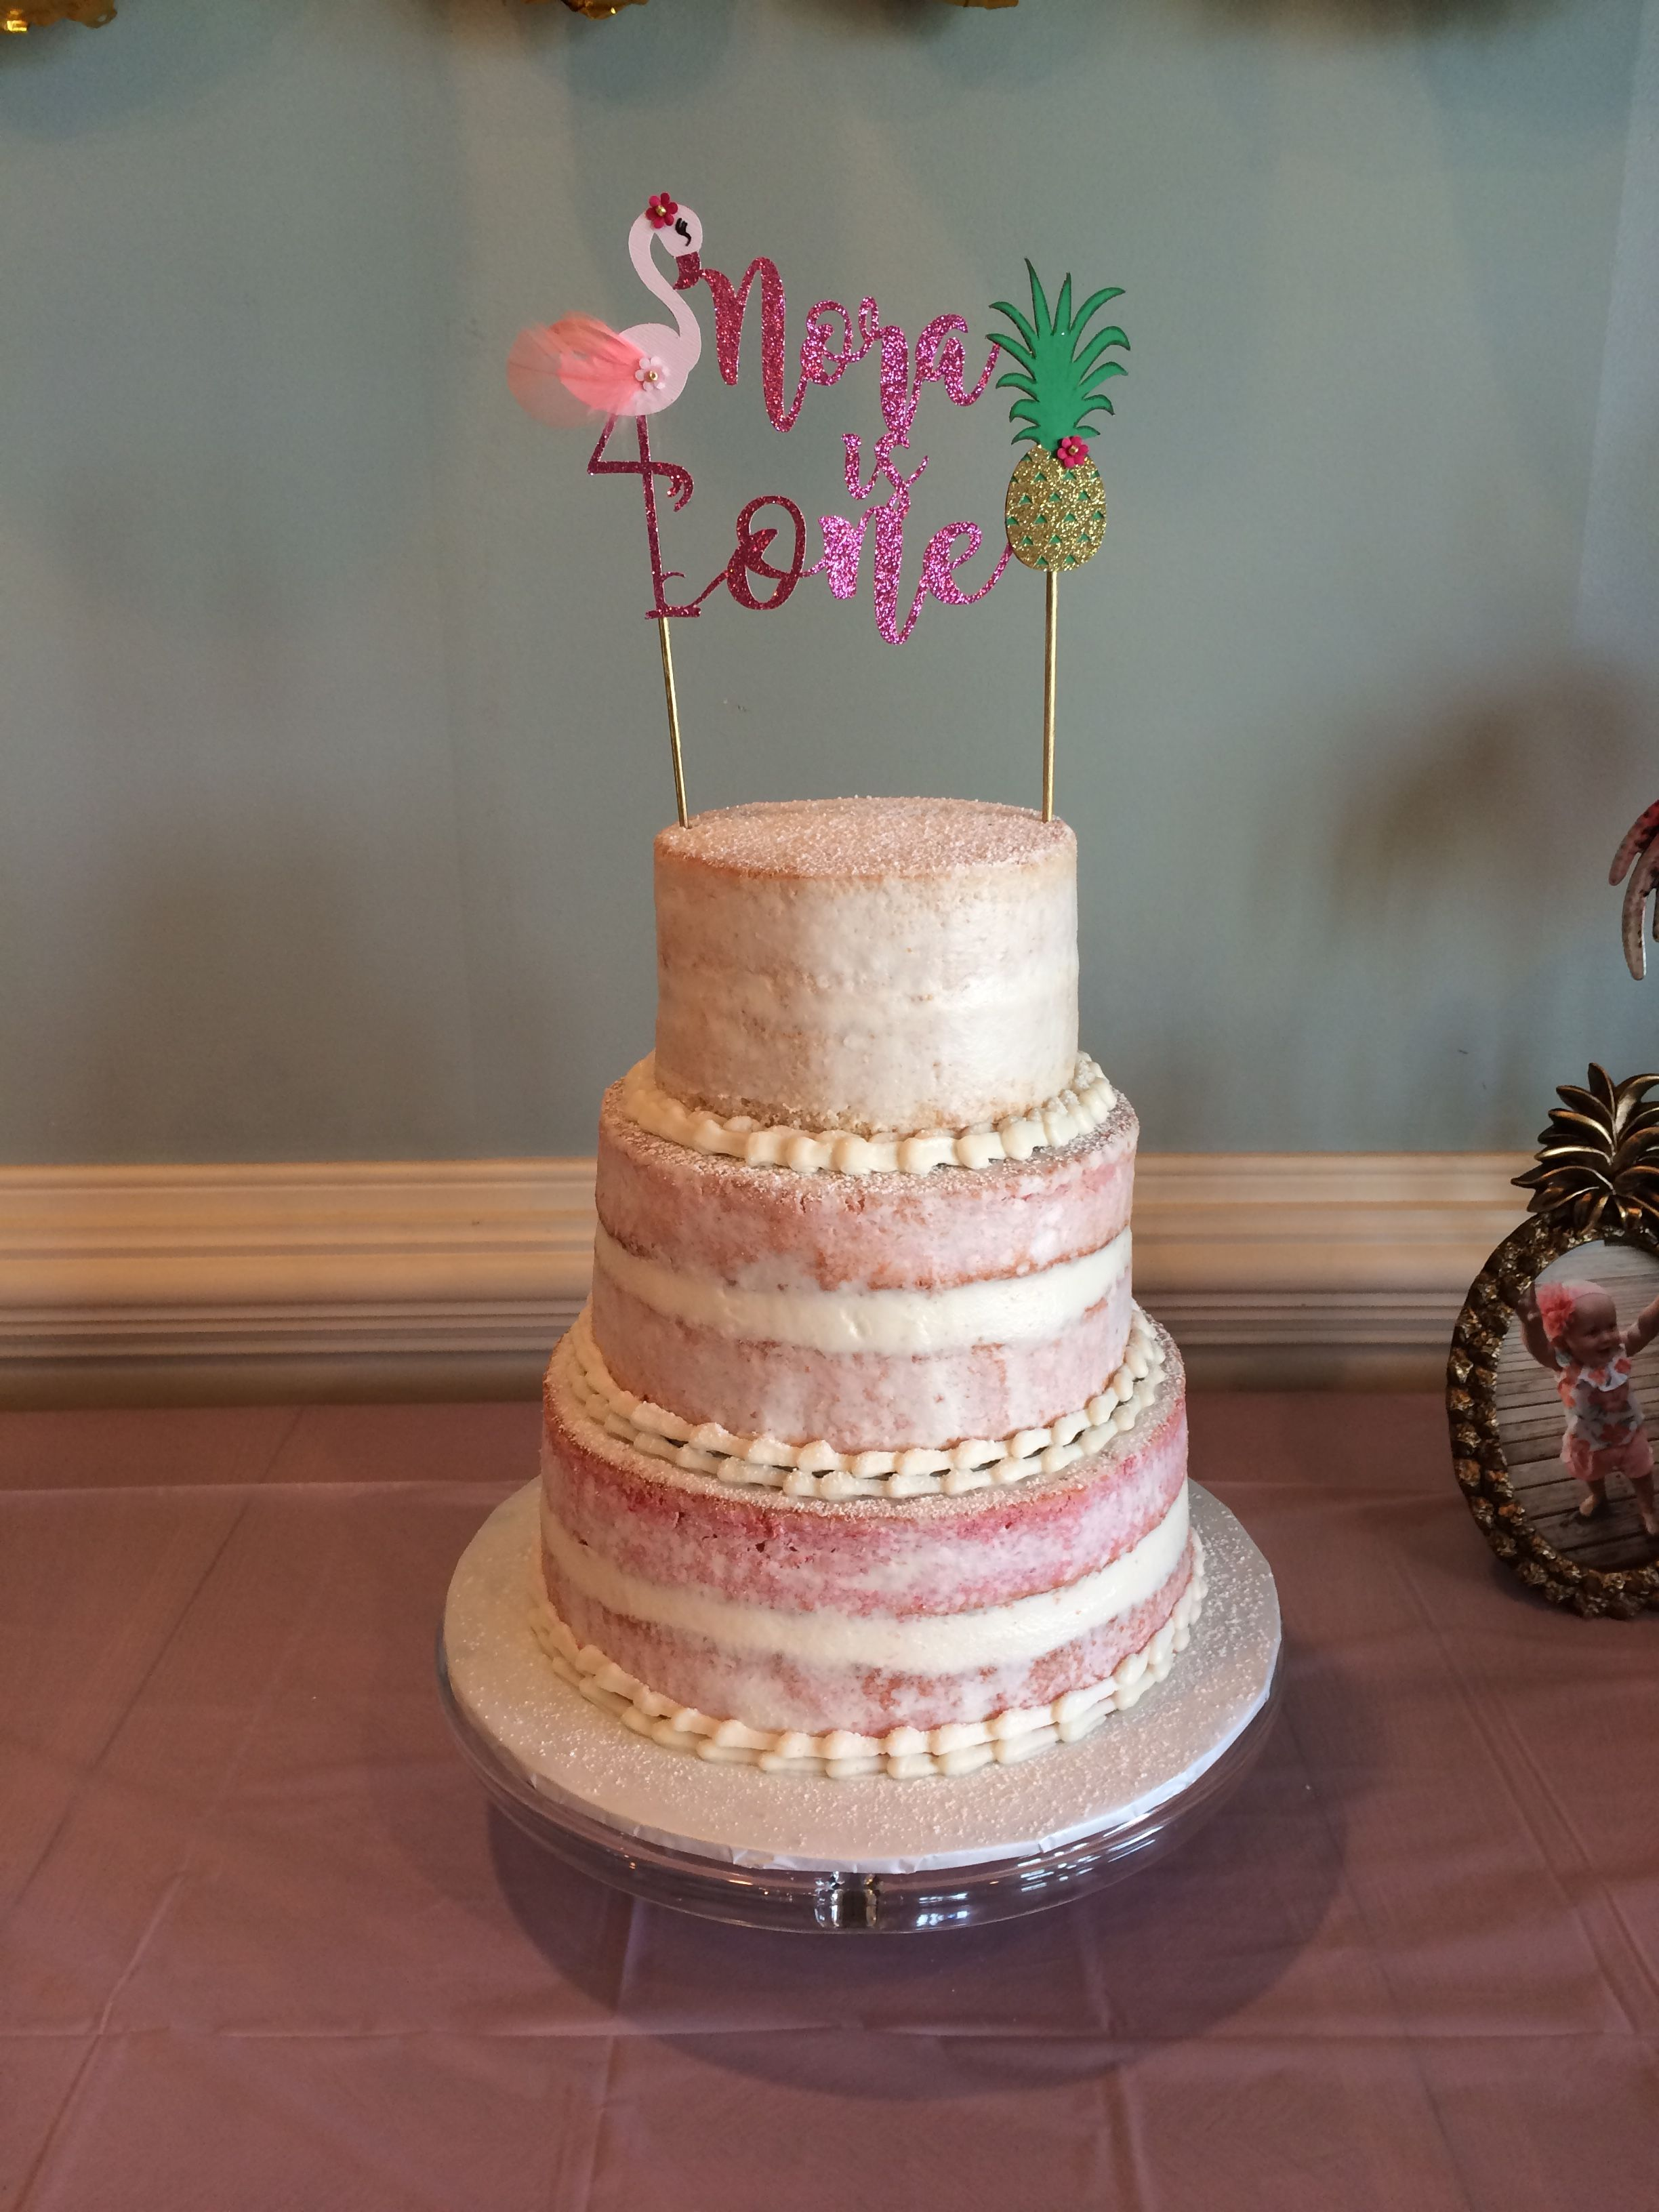 Naked Wedding Cake With Assorted Cupcakes - CakeCentral.com